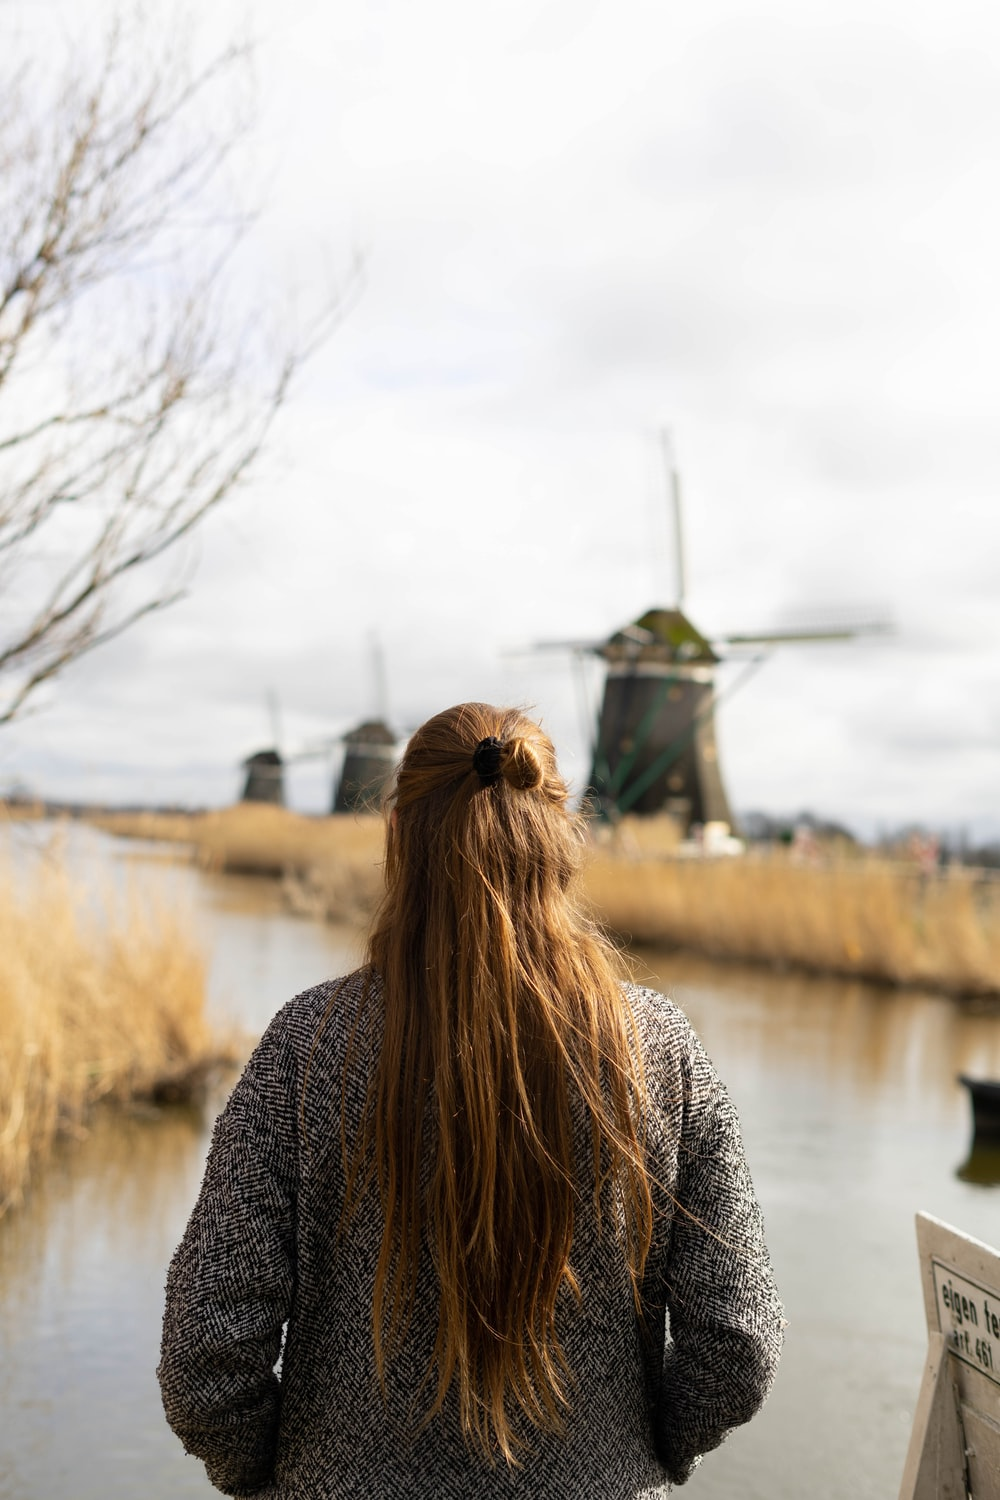 woman in black and gray sweater standing near body of water during daytime